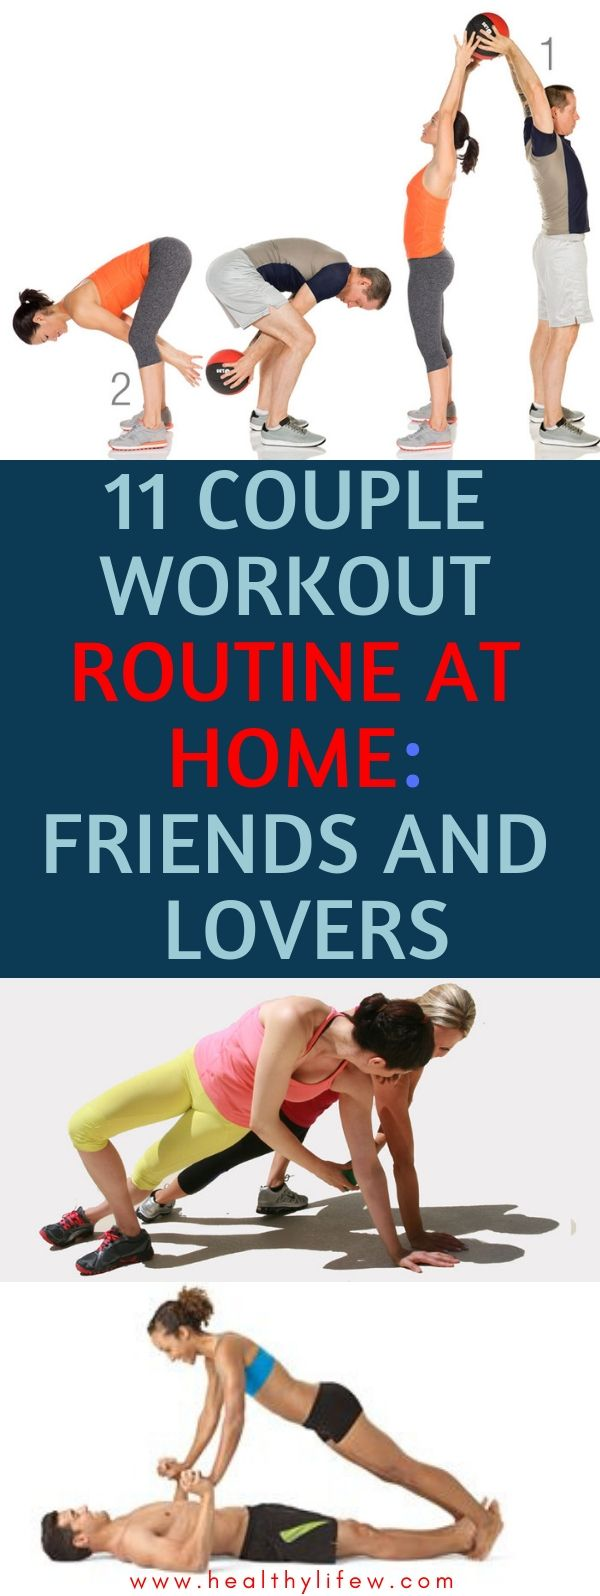 11 couple workout routine at home: friends, partners and lovers – Workout